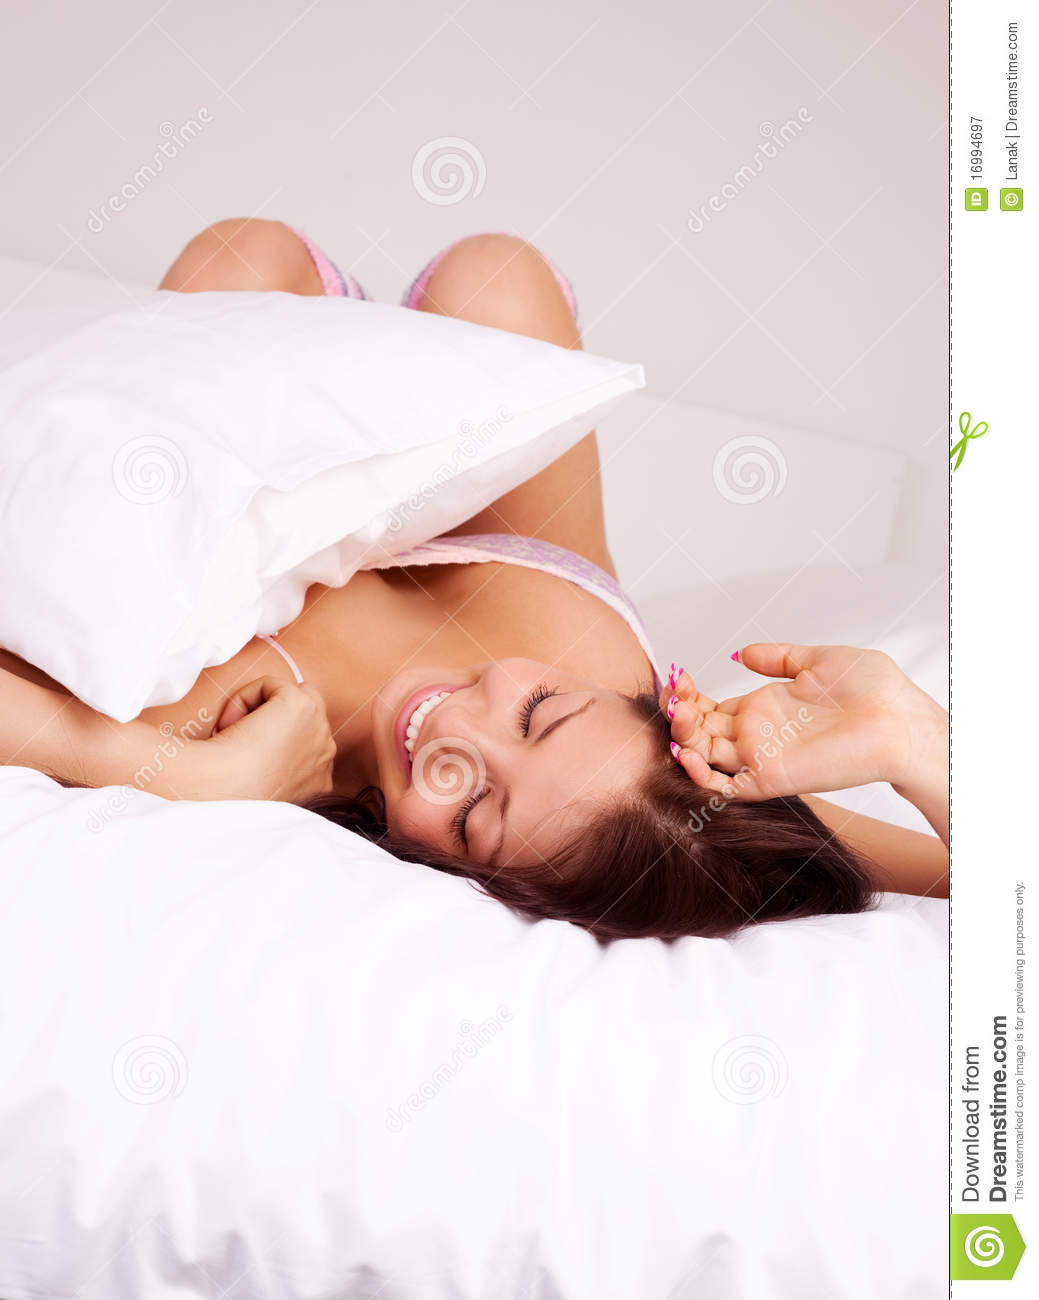 clipart of a girl waking up - photo #19